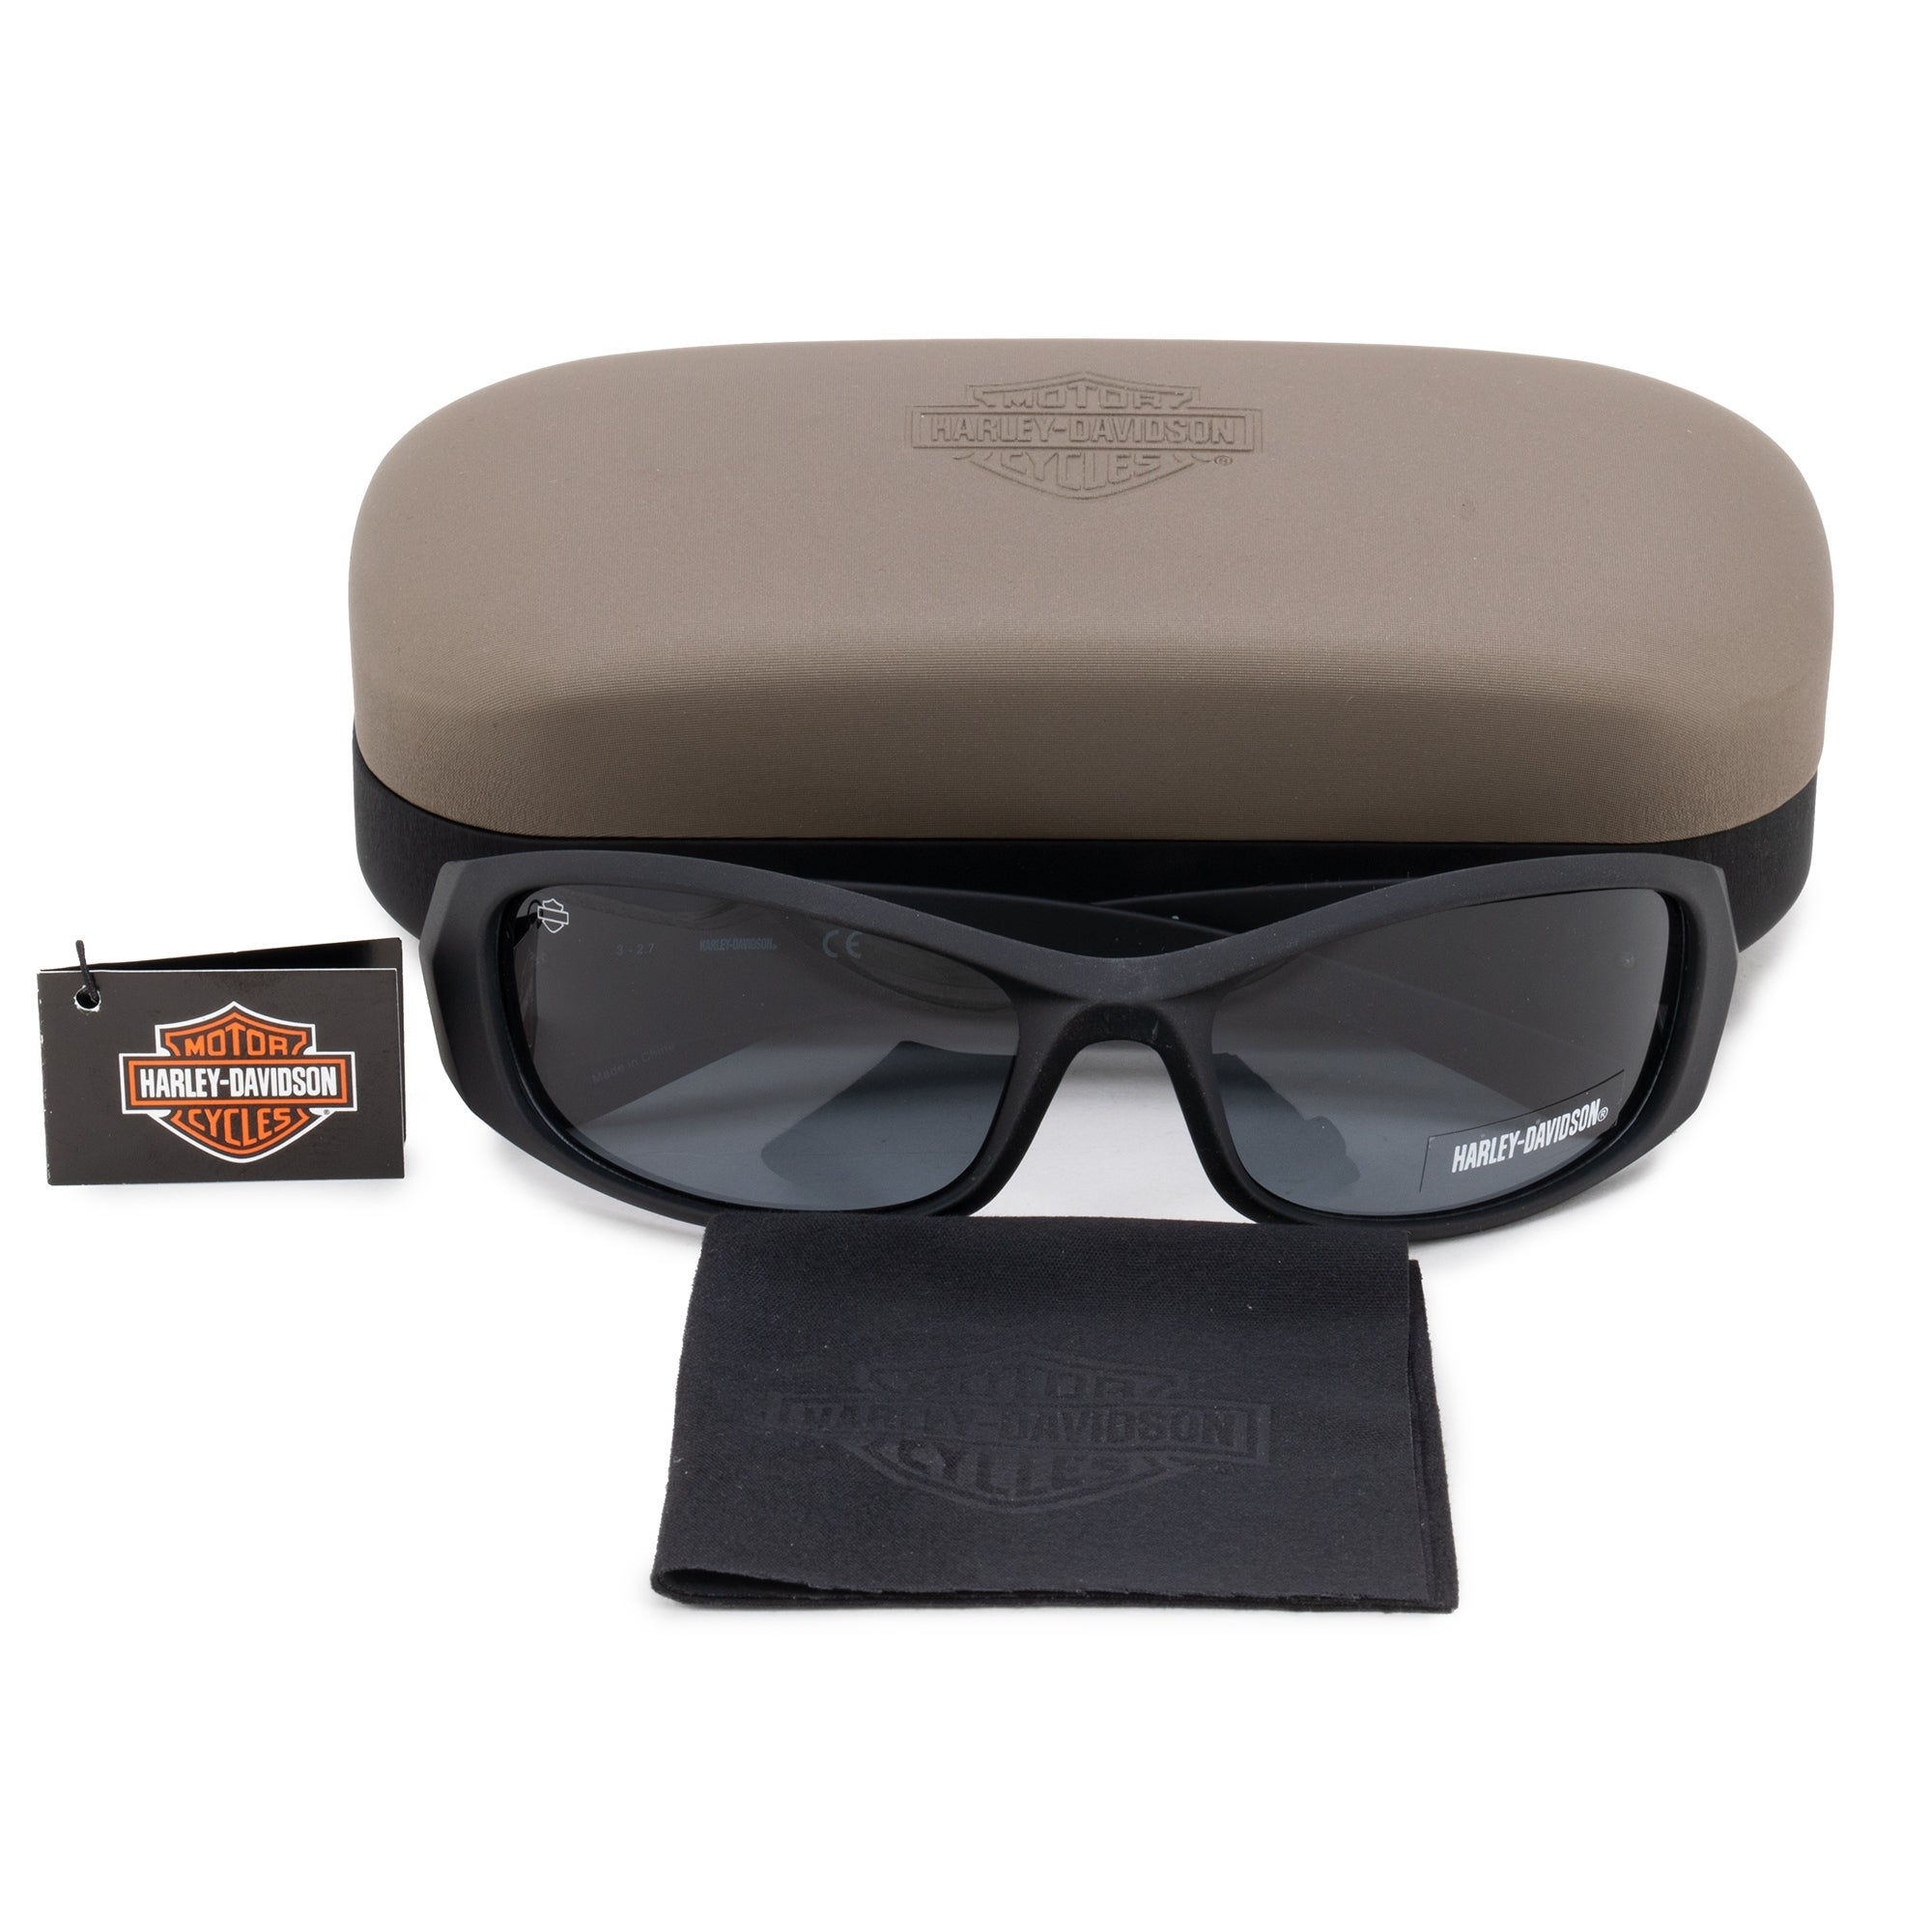 147a85d66d Shop Harley Davidson Sports Sunglasses HDV0004 BLK 3 62 - Free Shipping On  Orders Over  45 - Overstock - 25895505